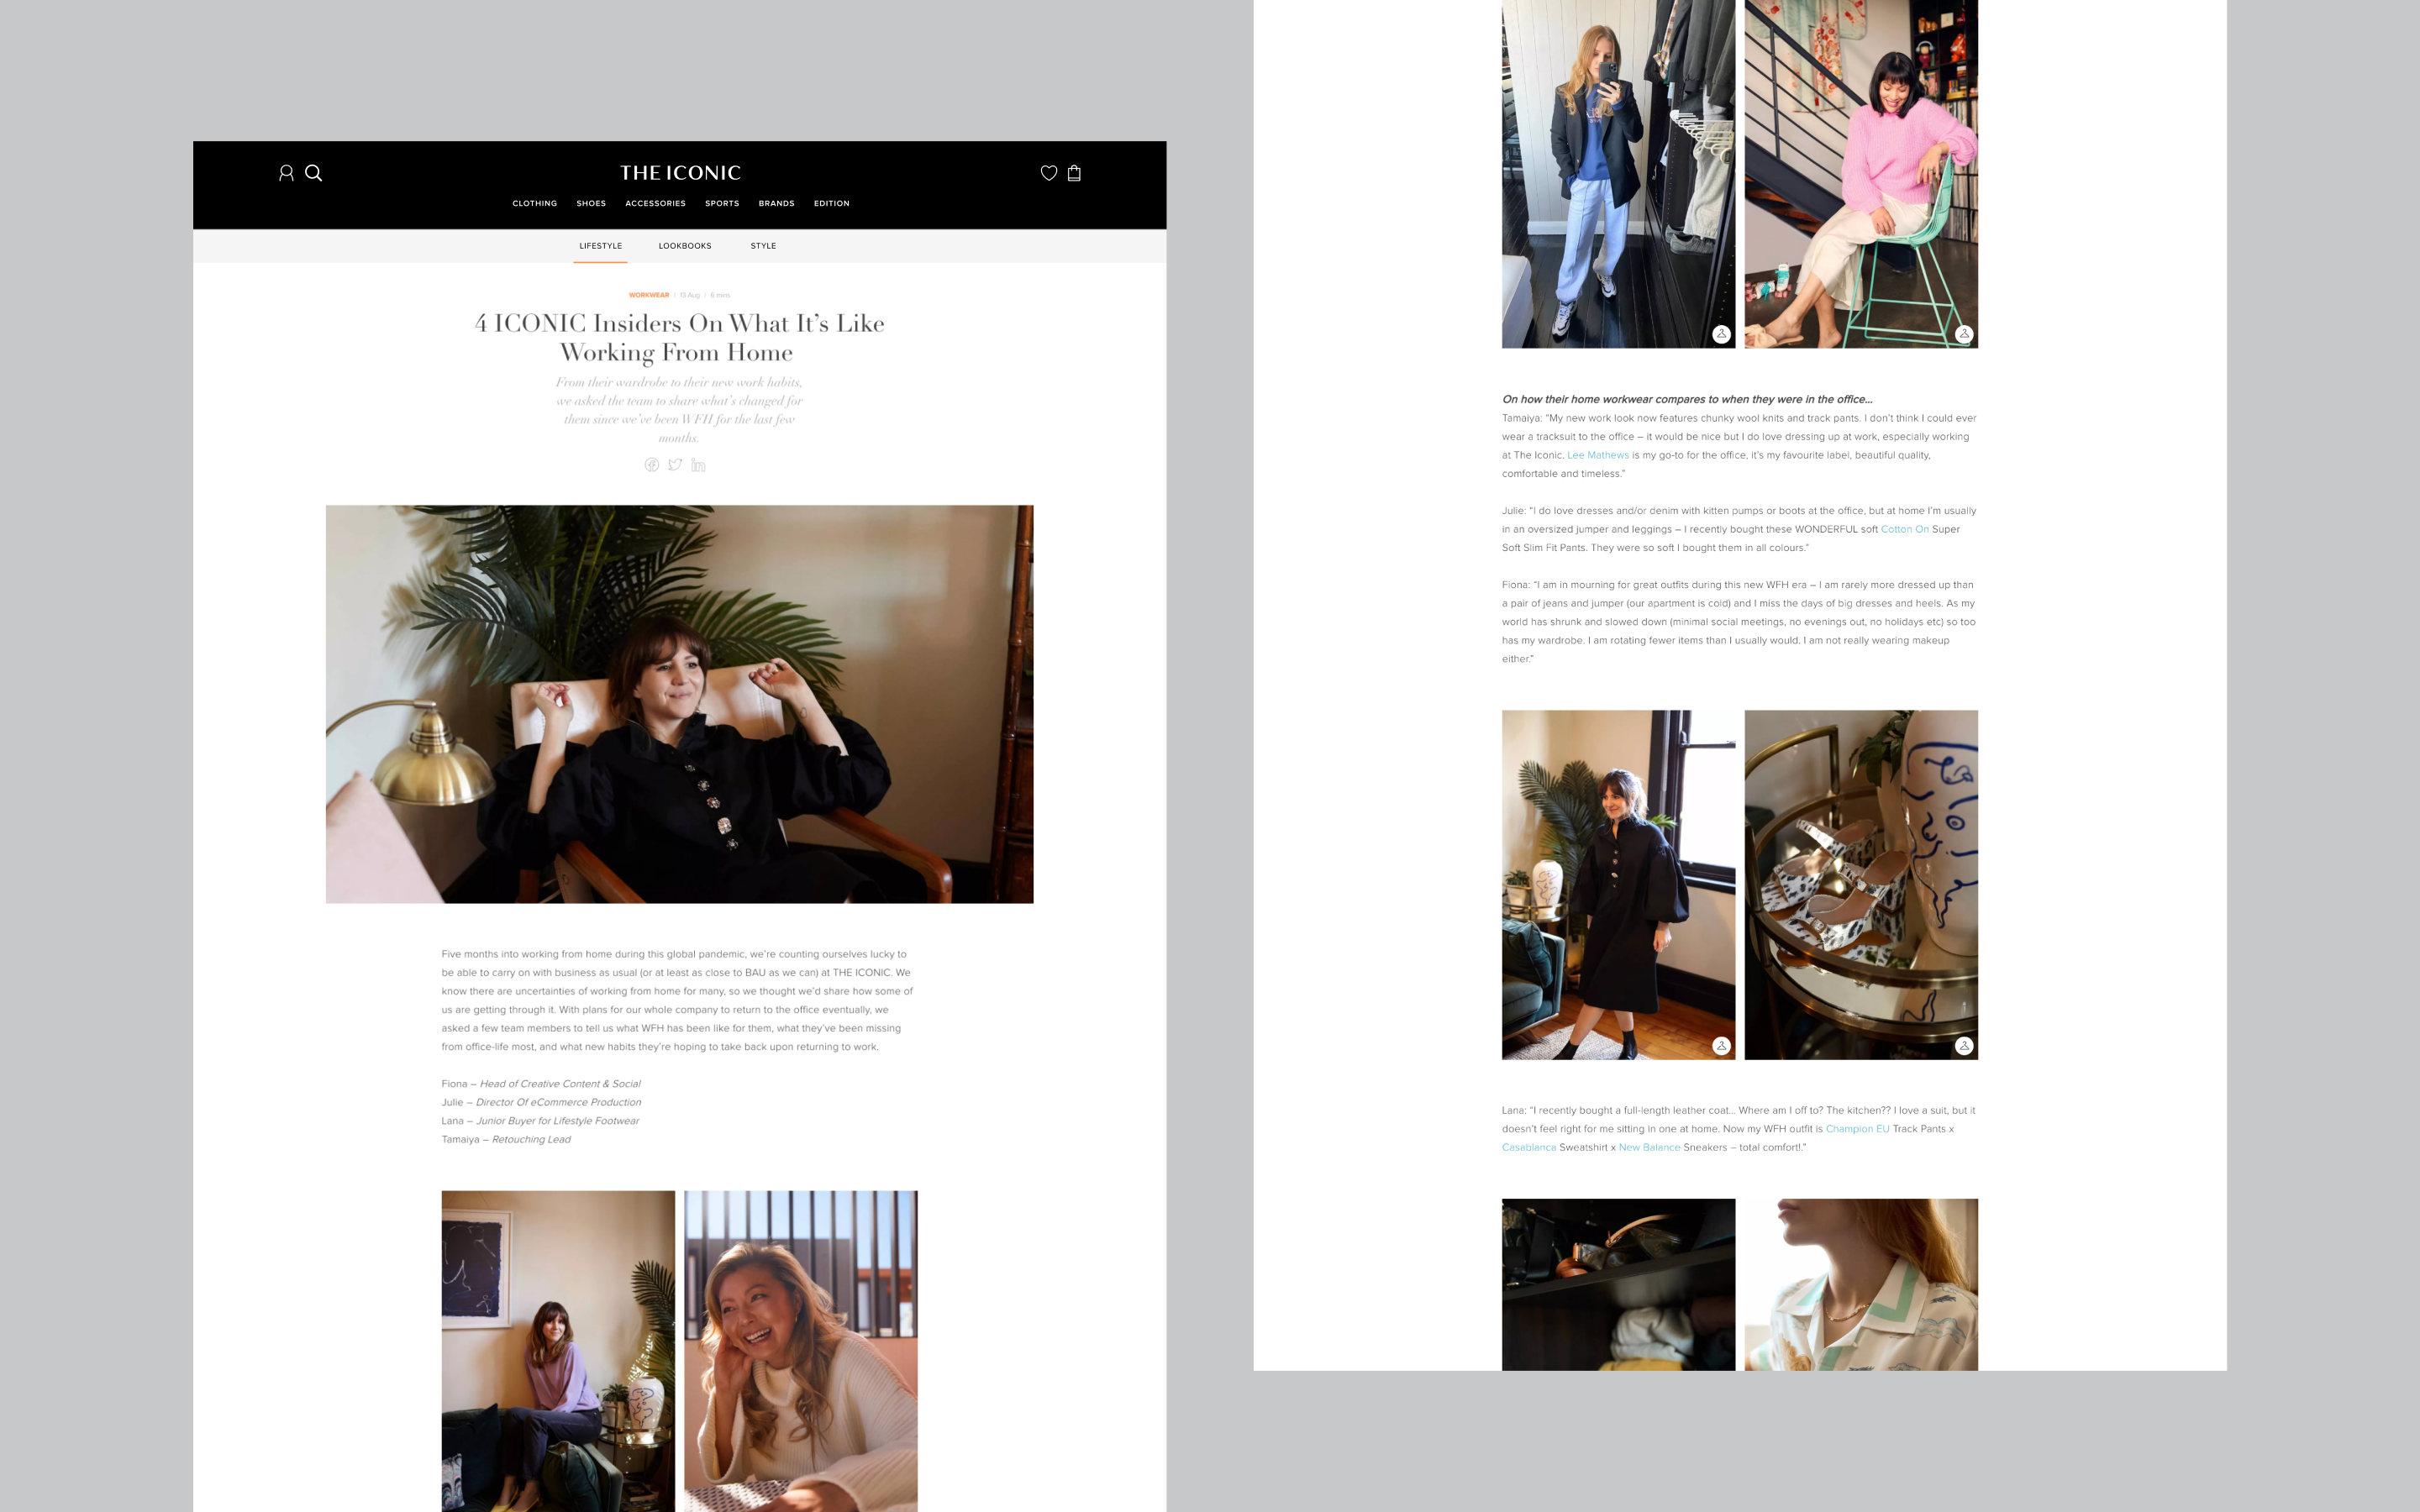 Edition by THE ICONIC new desktop design, an editorial piece lots of fashion imagery